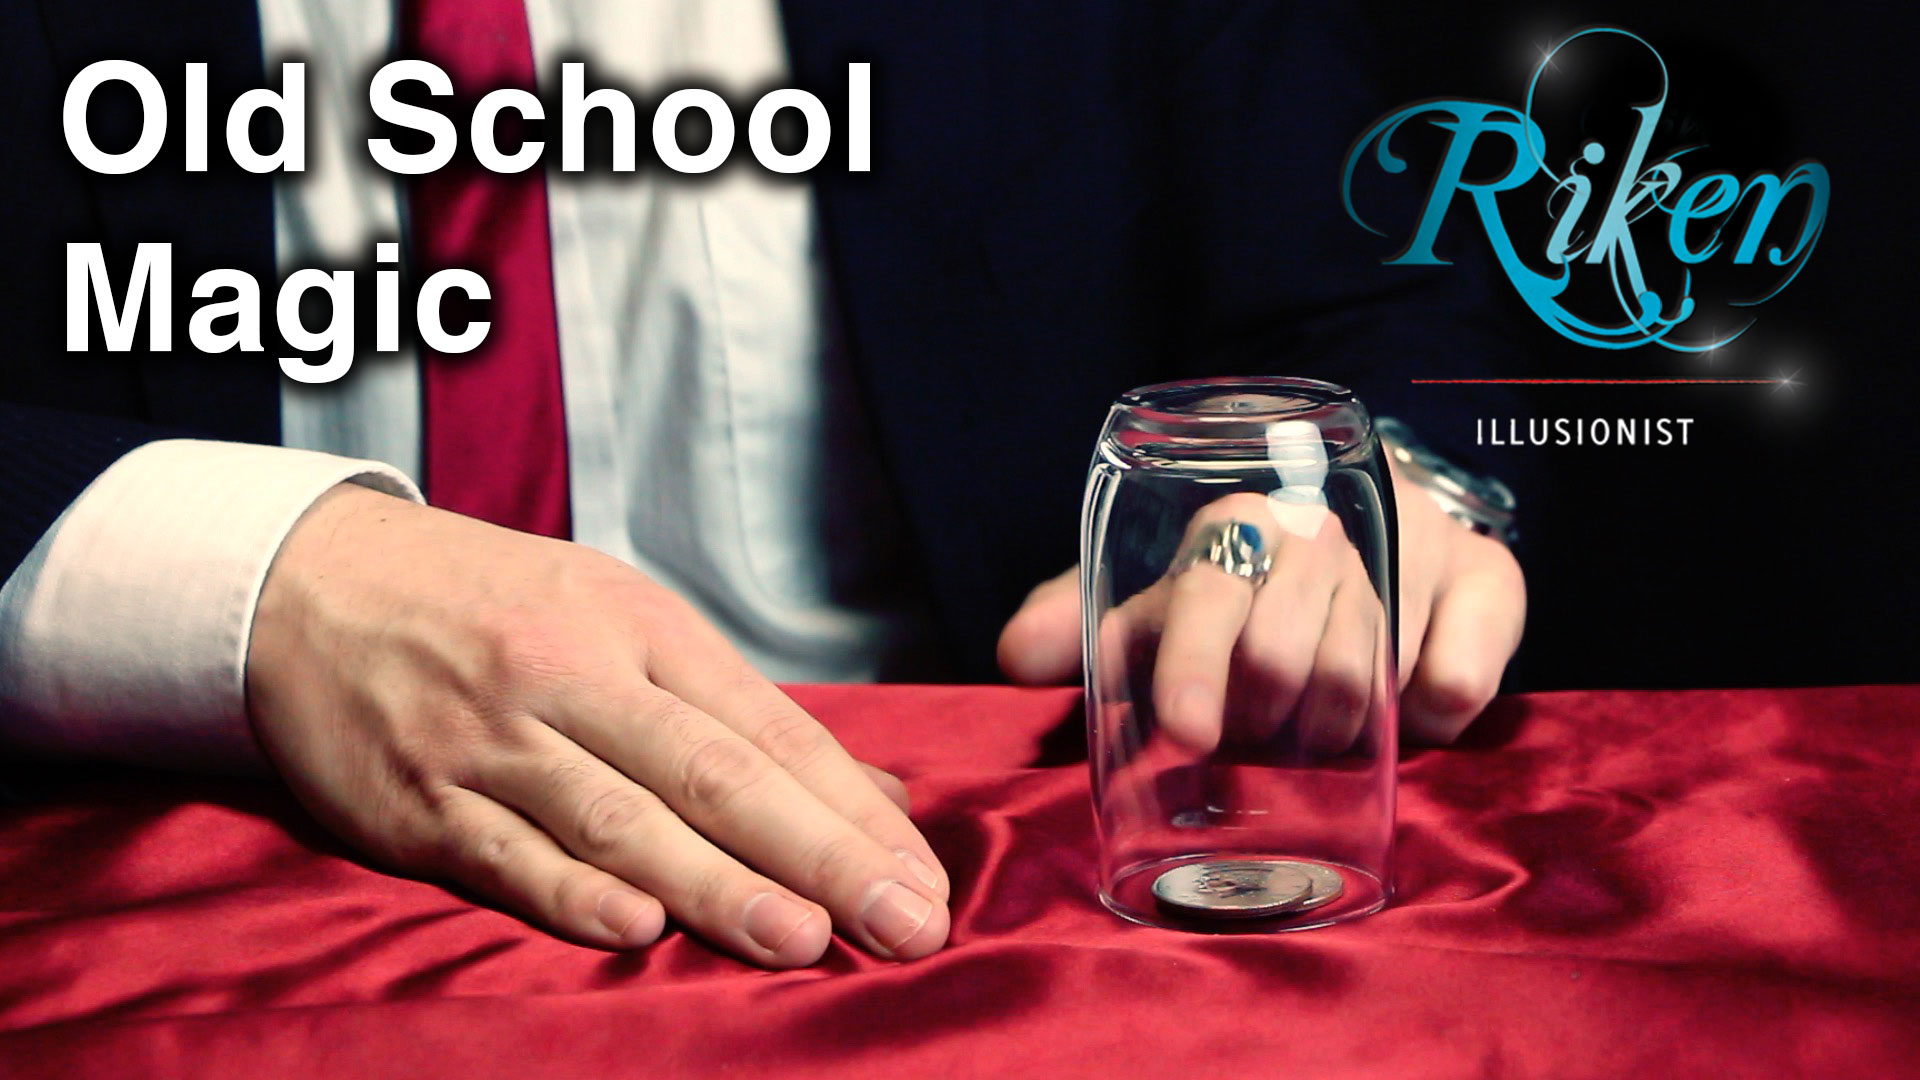 Old-School-Magic_-Glass-and-coins-2